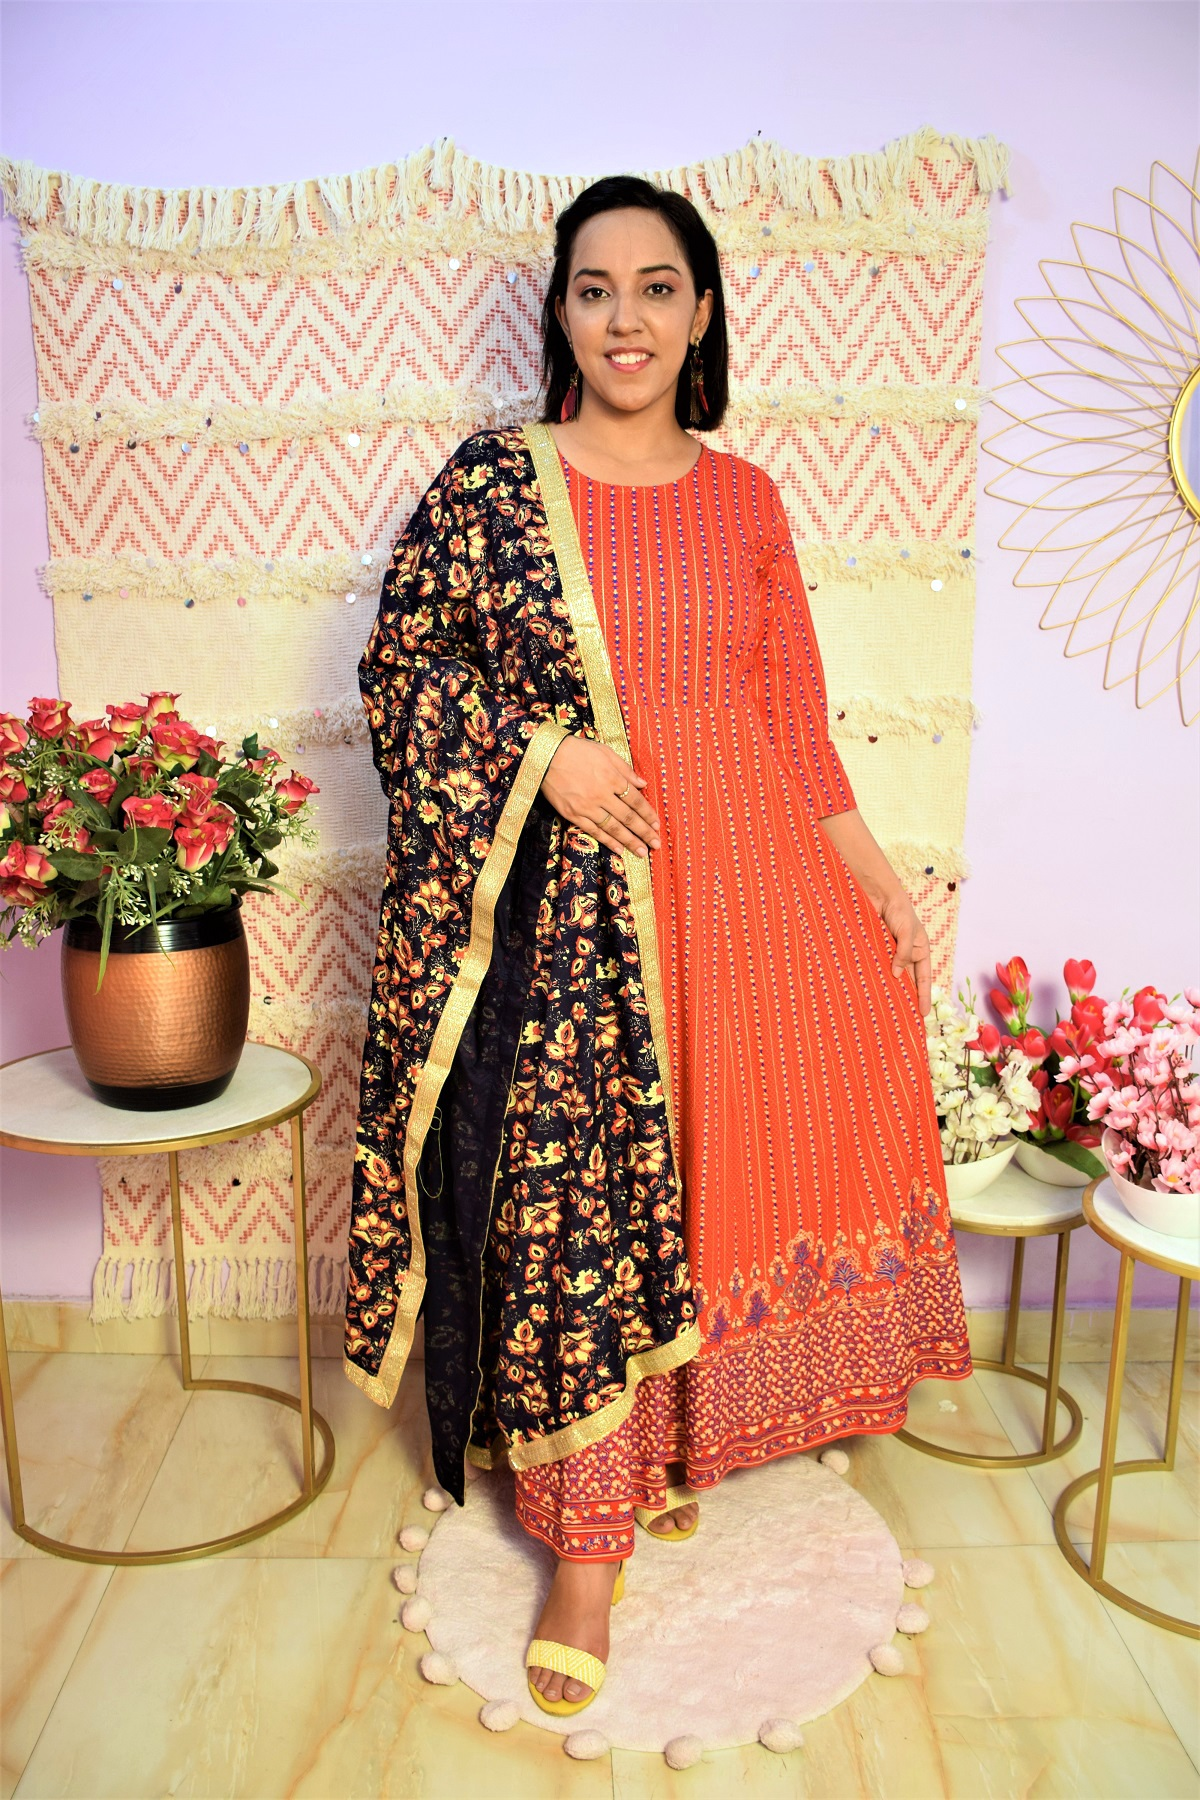 Folle Red Heavy Cotton Dress With Blue Gold Duppatta